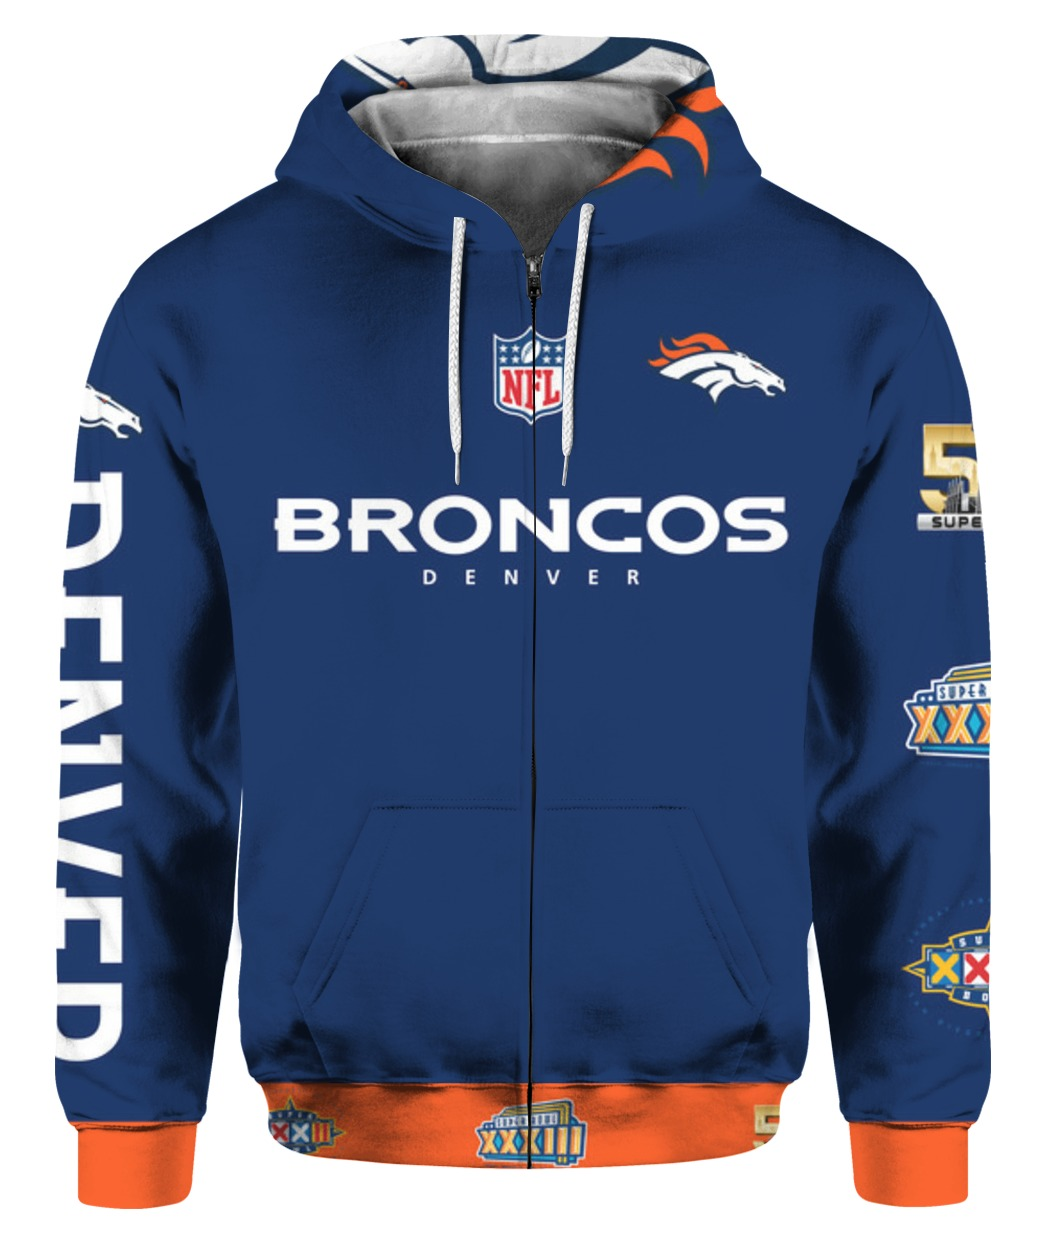 Stand for the flag kneel for the cross denver broncos all over print zip hoodie